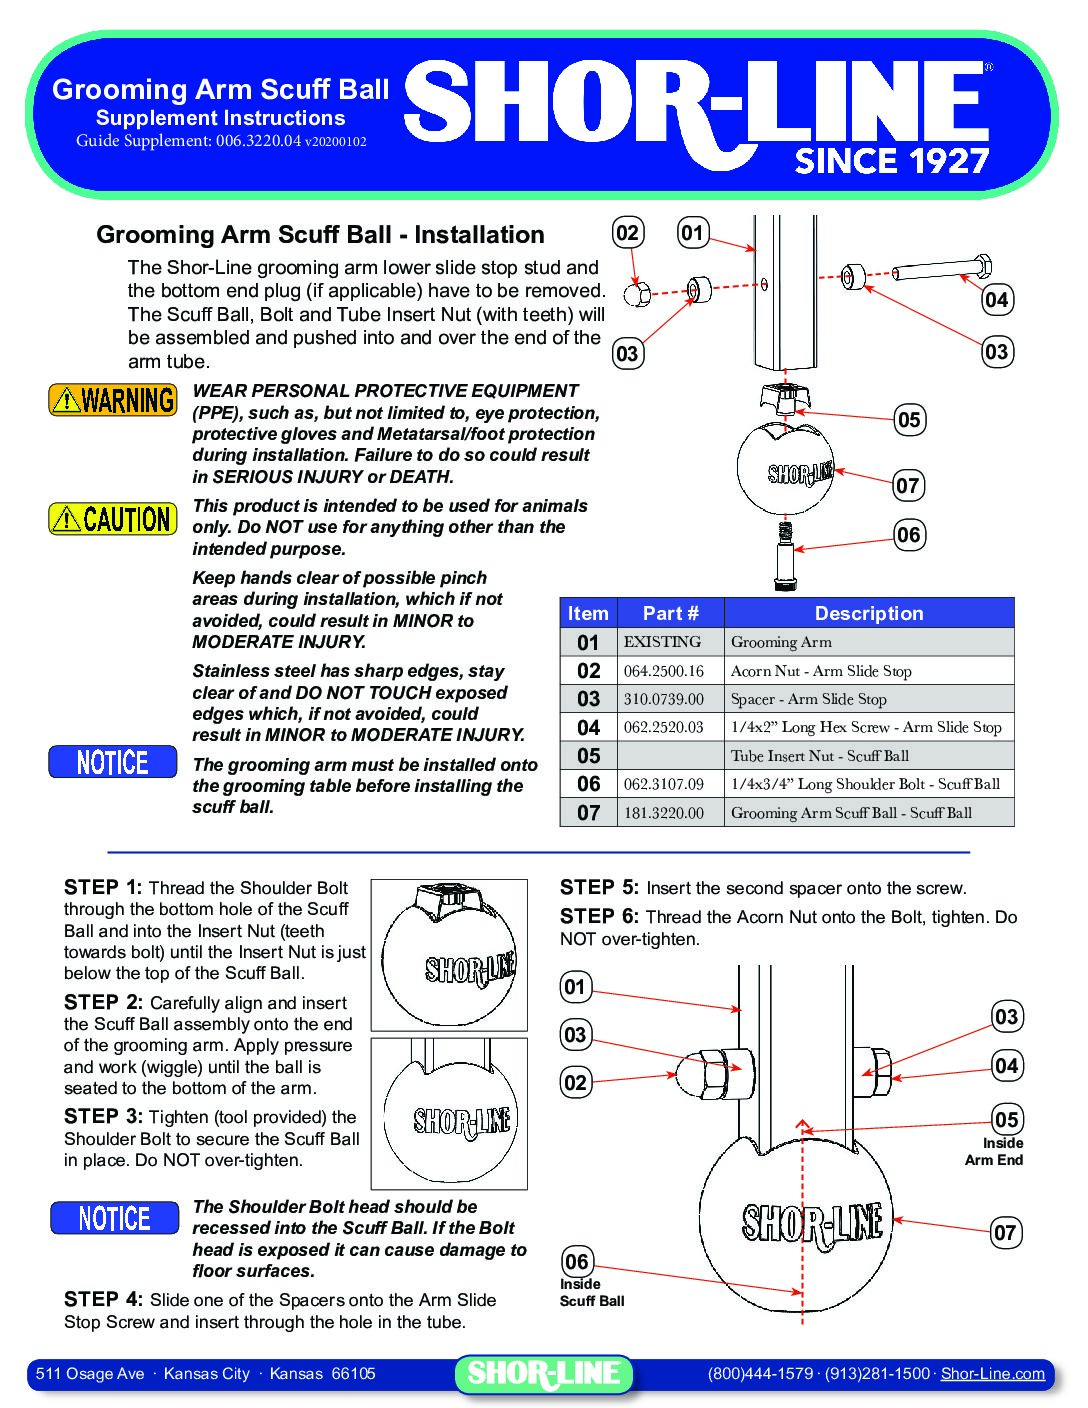 006.3220.04 Grooming Table Arm Scuff Ball Installation Sheet 20191230v01